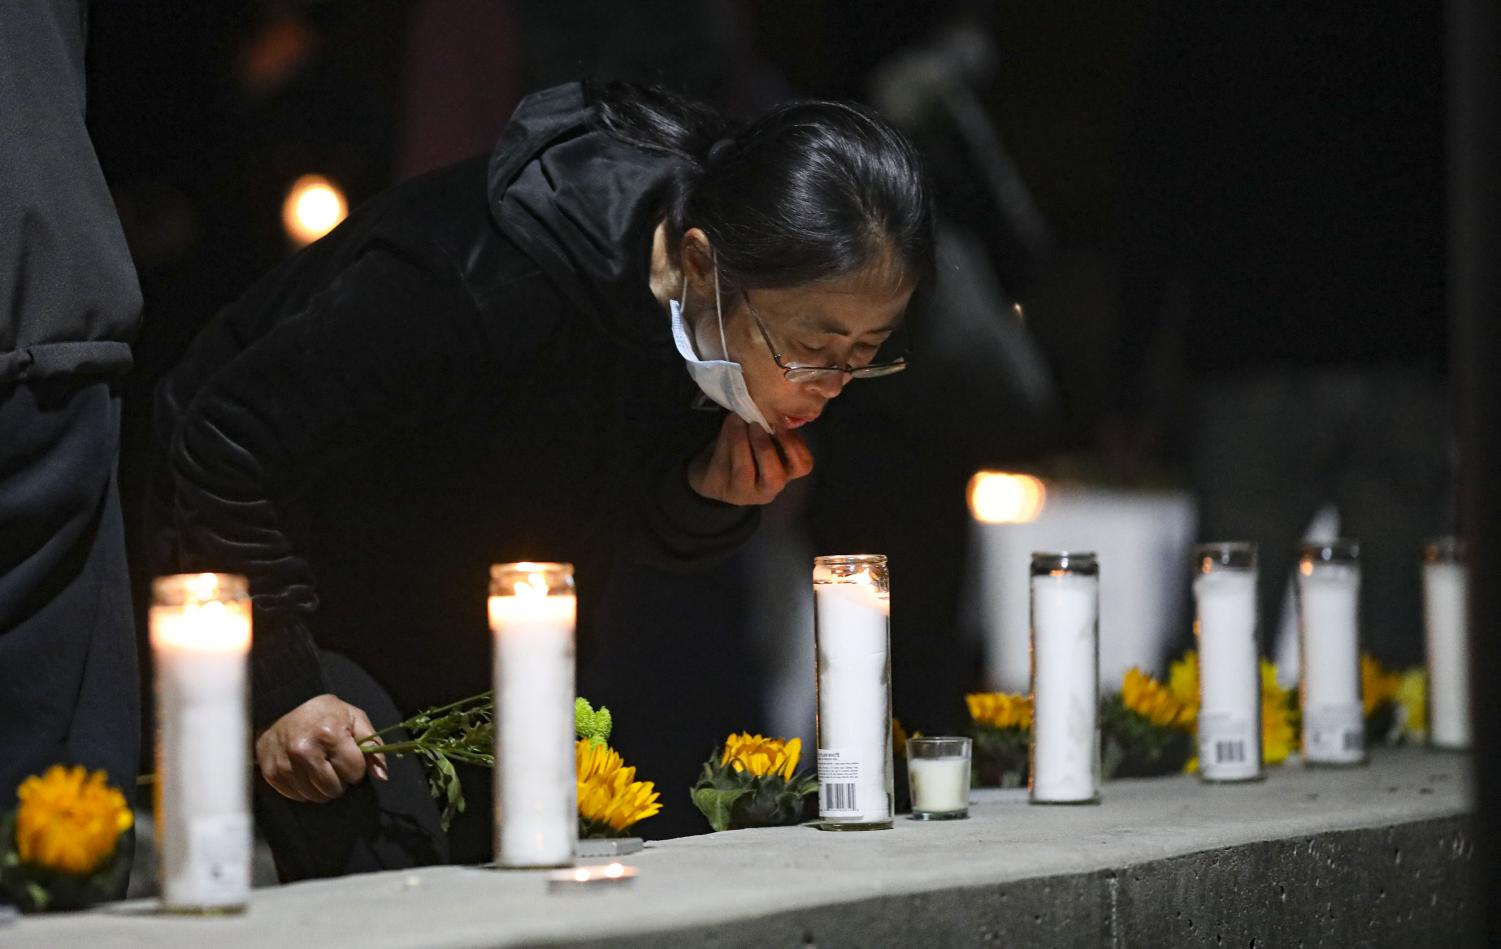 Pam Wang blows out the candles places to remember the eight lives lost